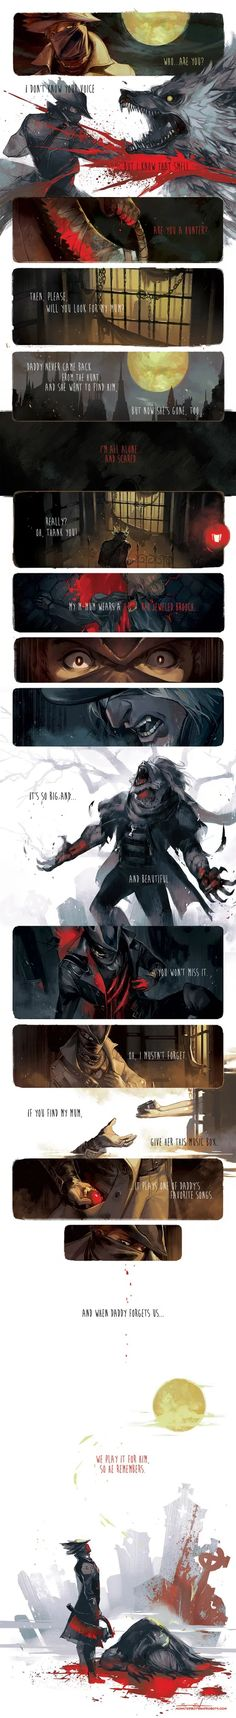 One of my favourite Bloodborne comic strips. I love it when they humanise our hunter. Dark Souls Art, Dark Art, Video Game Art, Video Games, Bloodborne Art, Soul Game, Old Blood, Dungeons And Dragons, Best Funny Pictures